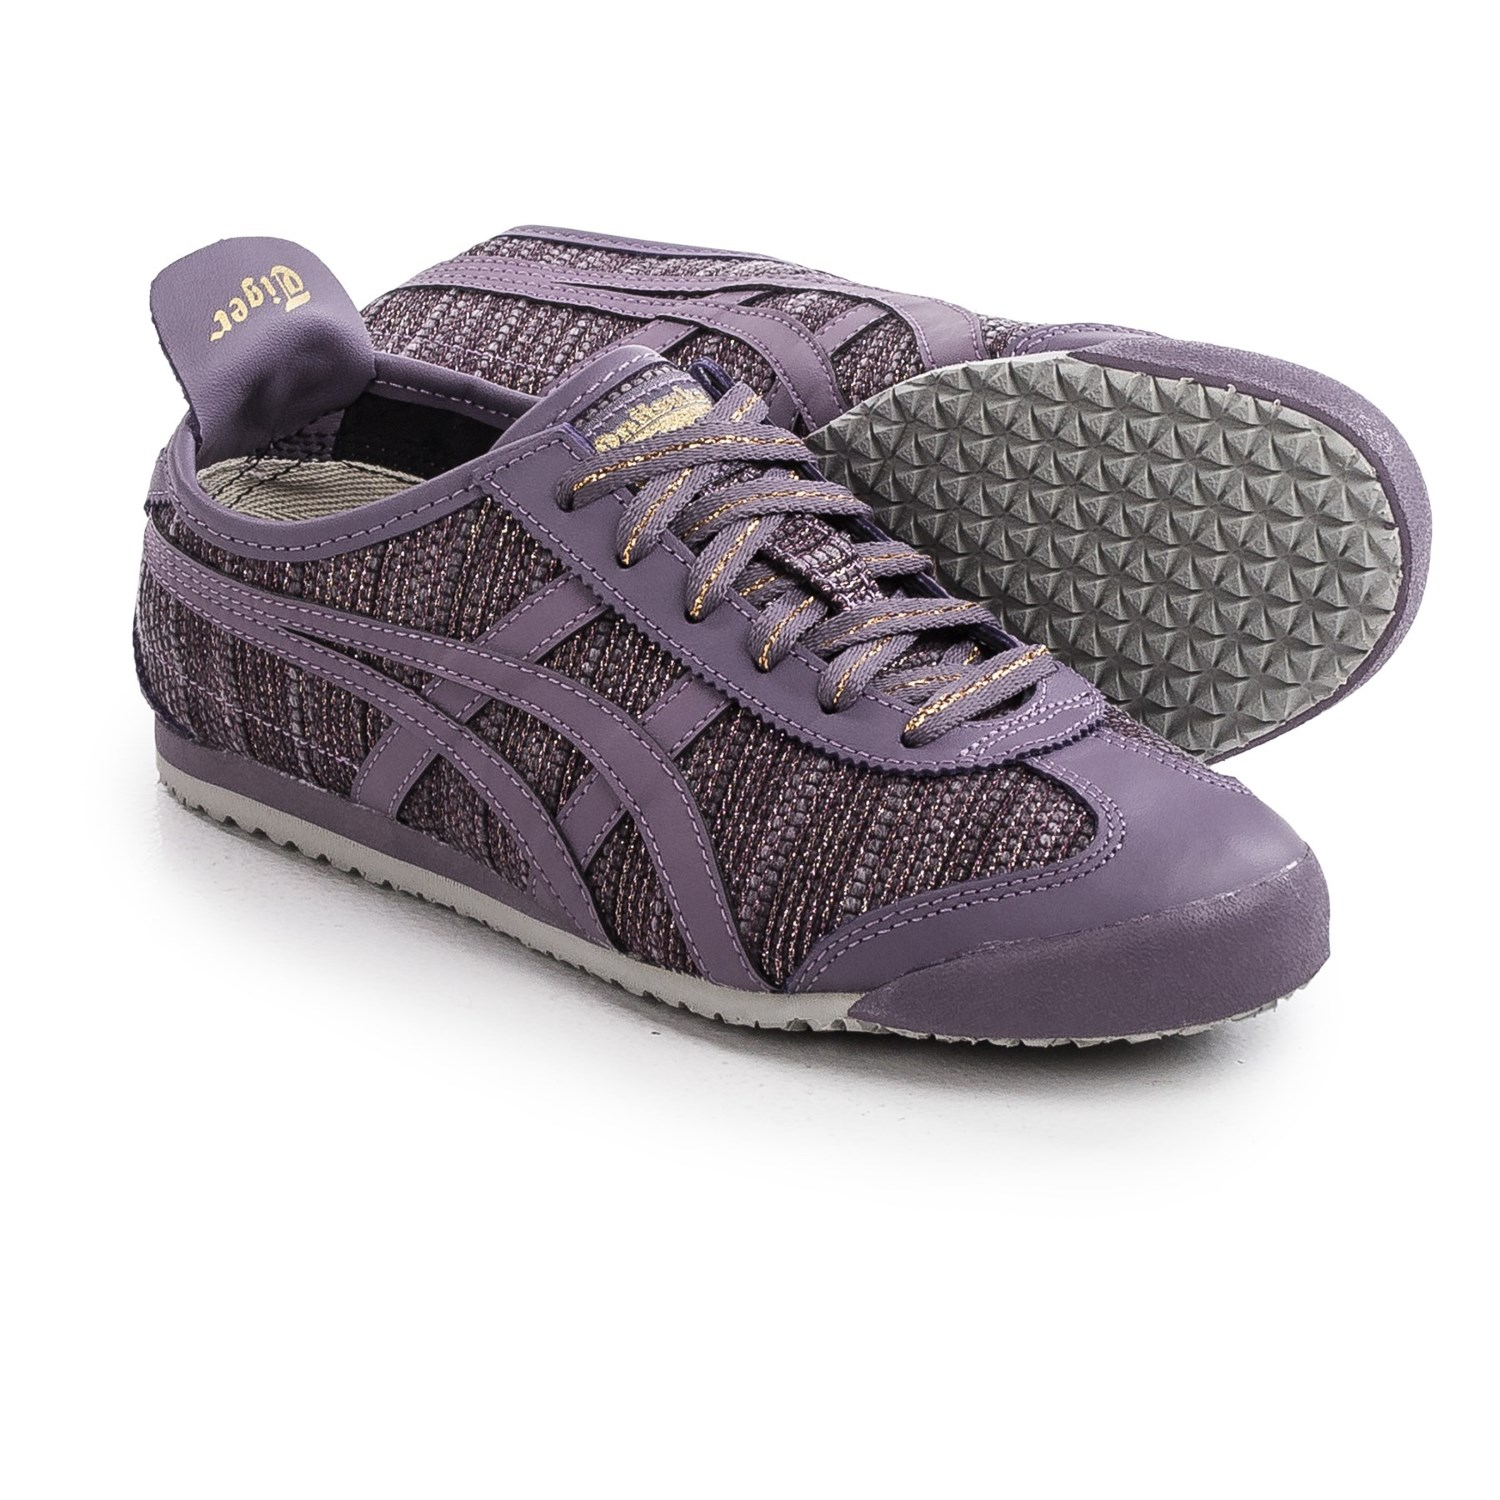 asics onitsuka tiger mexico 66 sneakers for women save 44. Black Bedroom Furniture Sets. Home Design Ideas